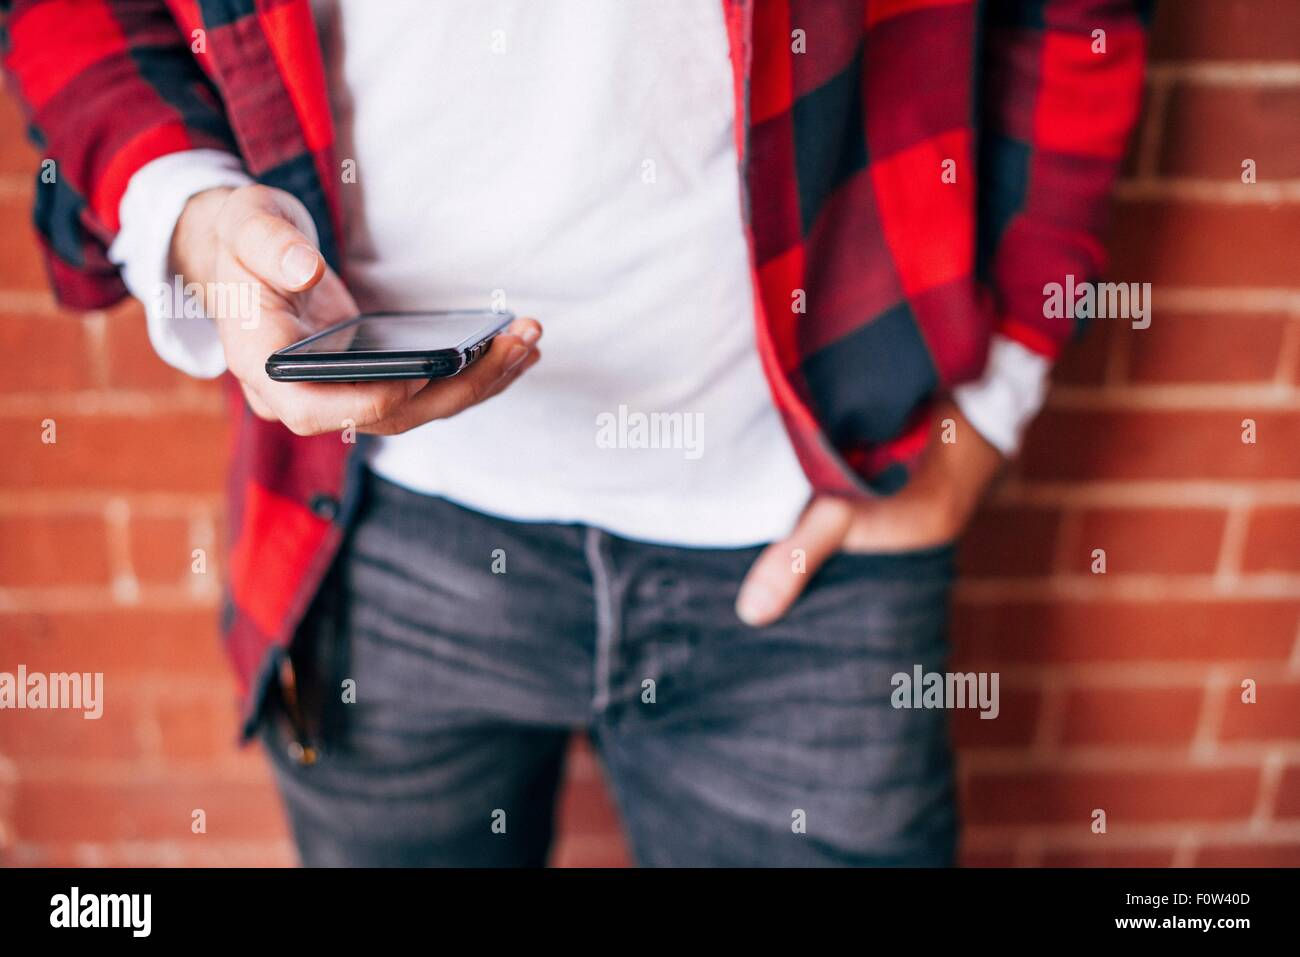 Detail shot of man's hands holding smartphone Photo Stock